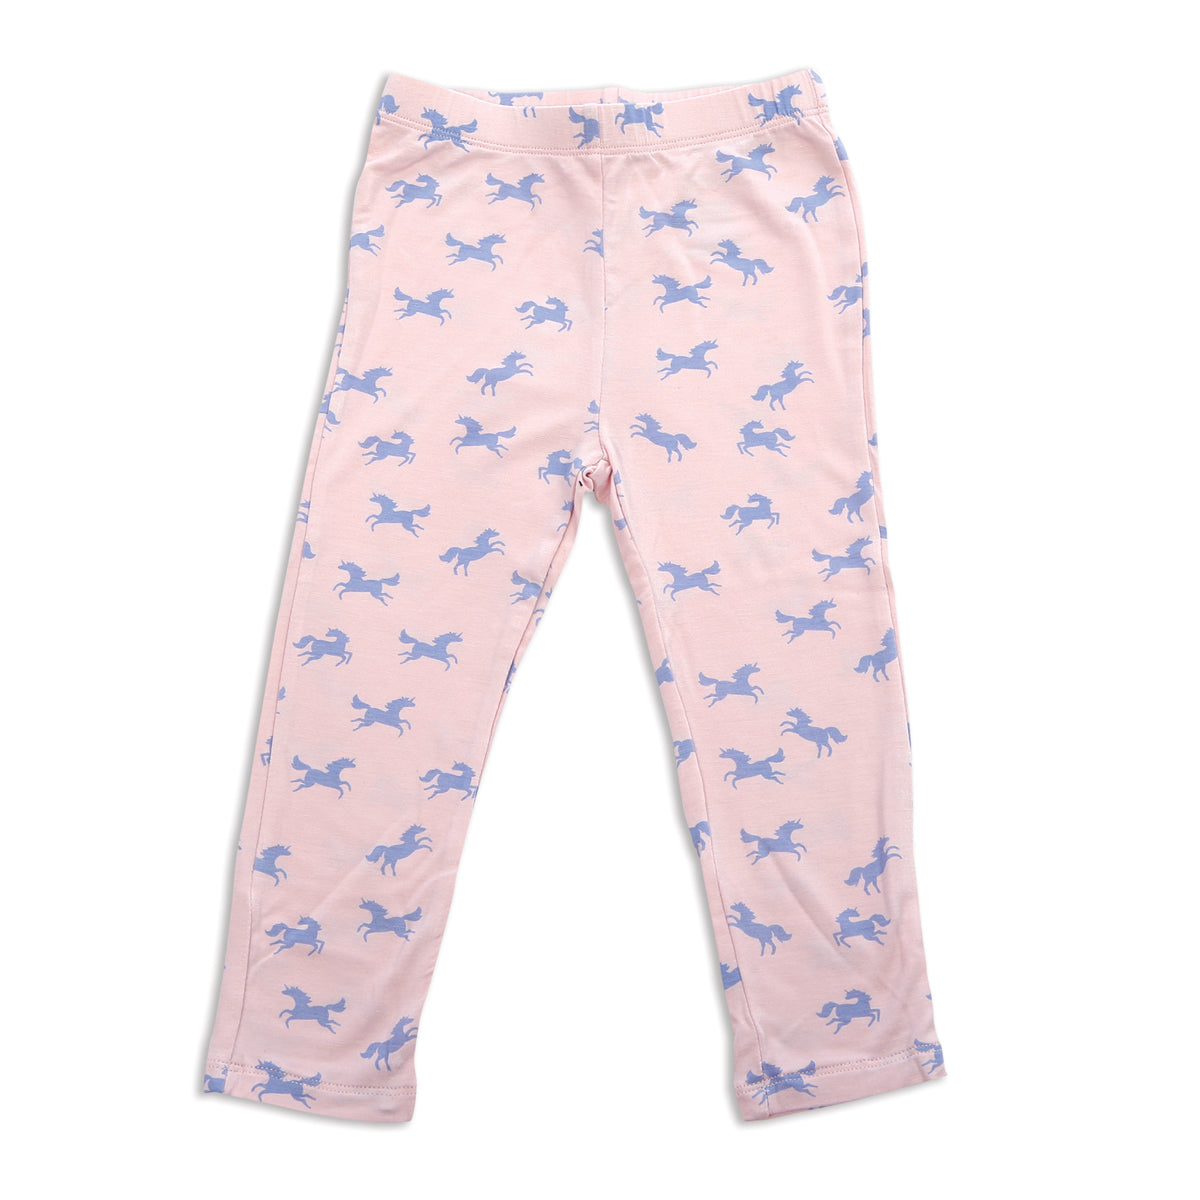 Bamboo Leggings (Unicorn Print)